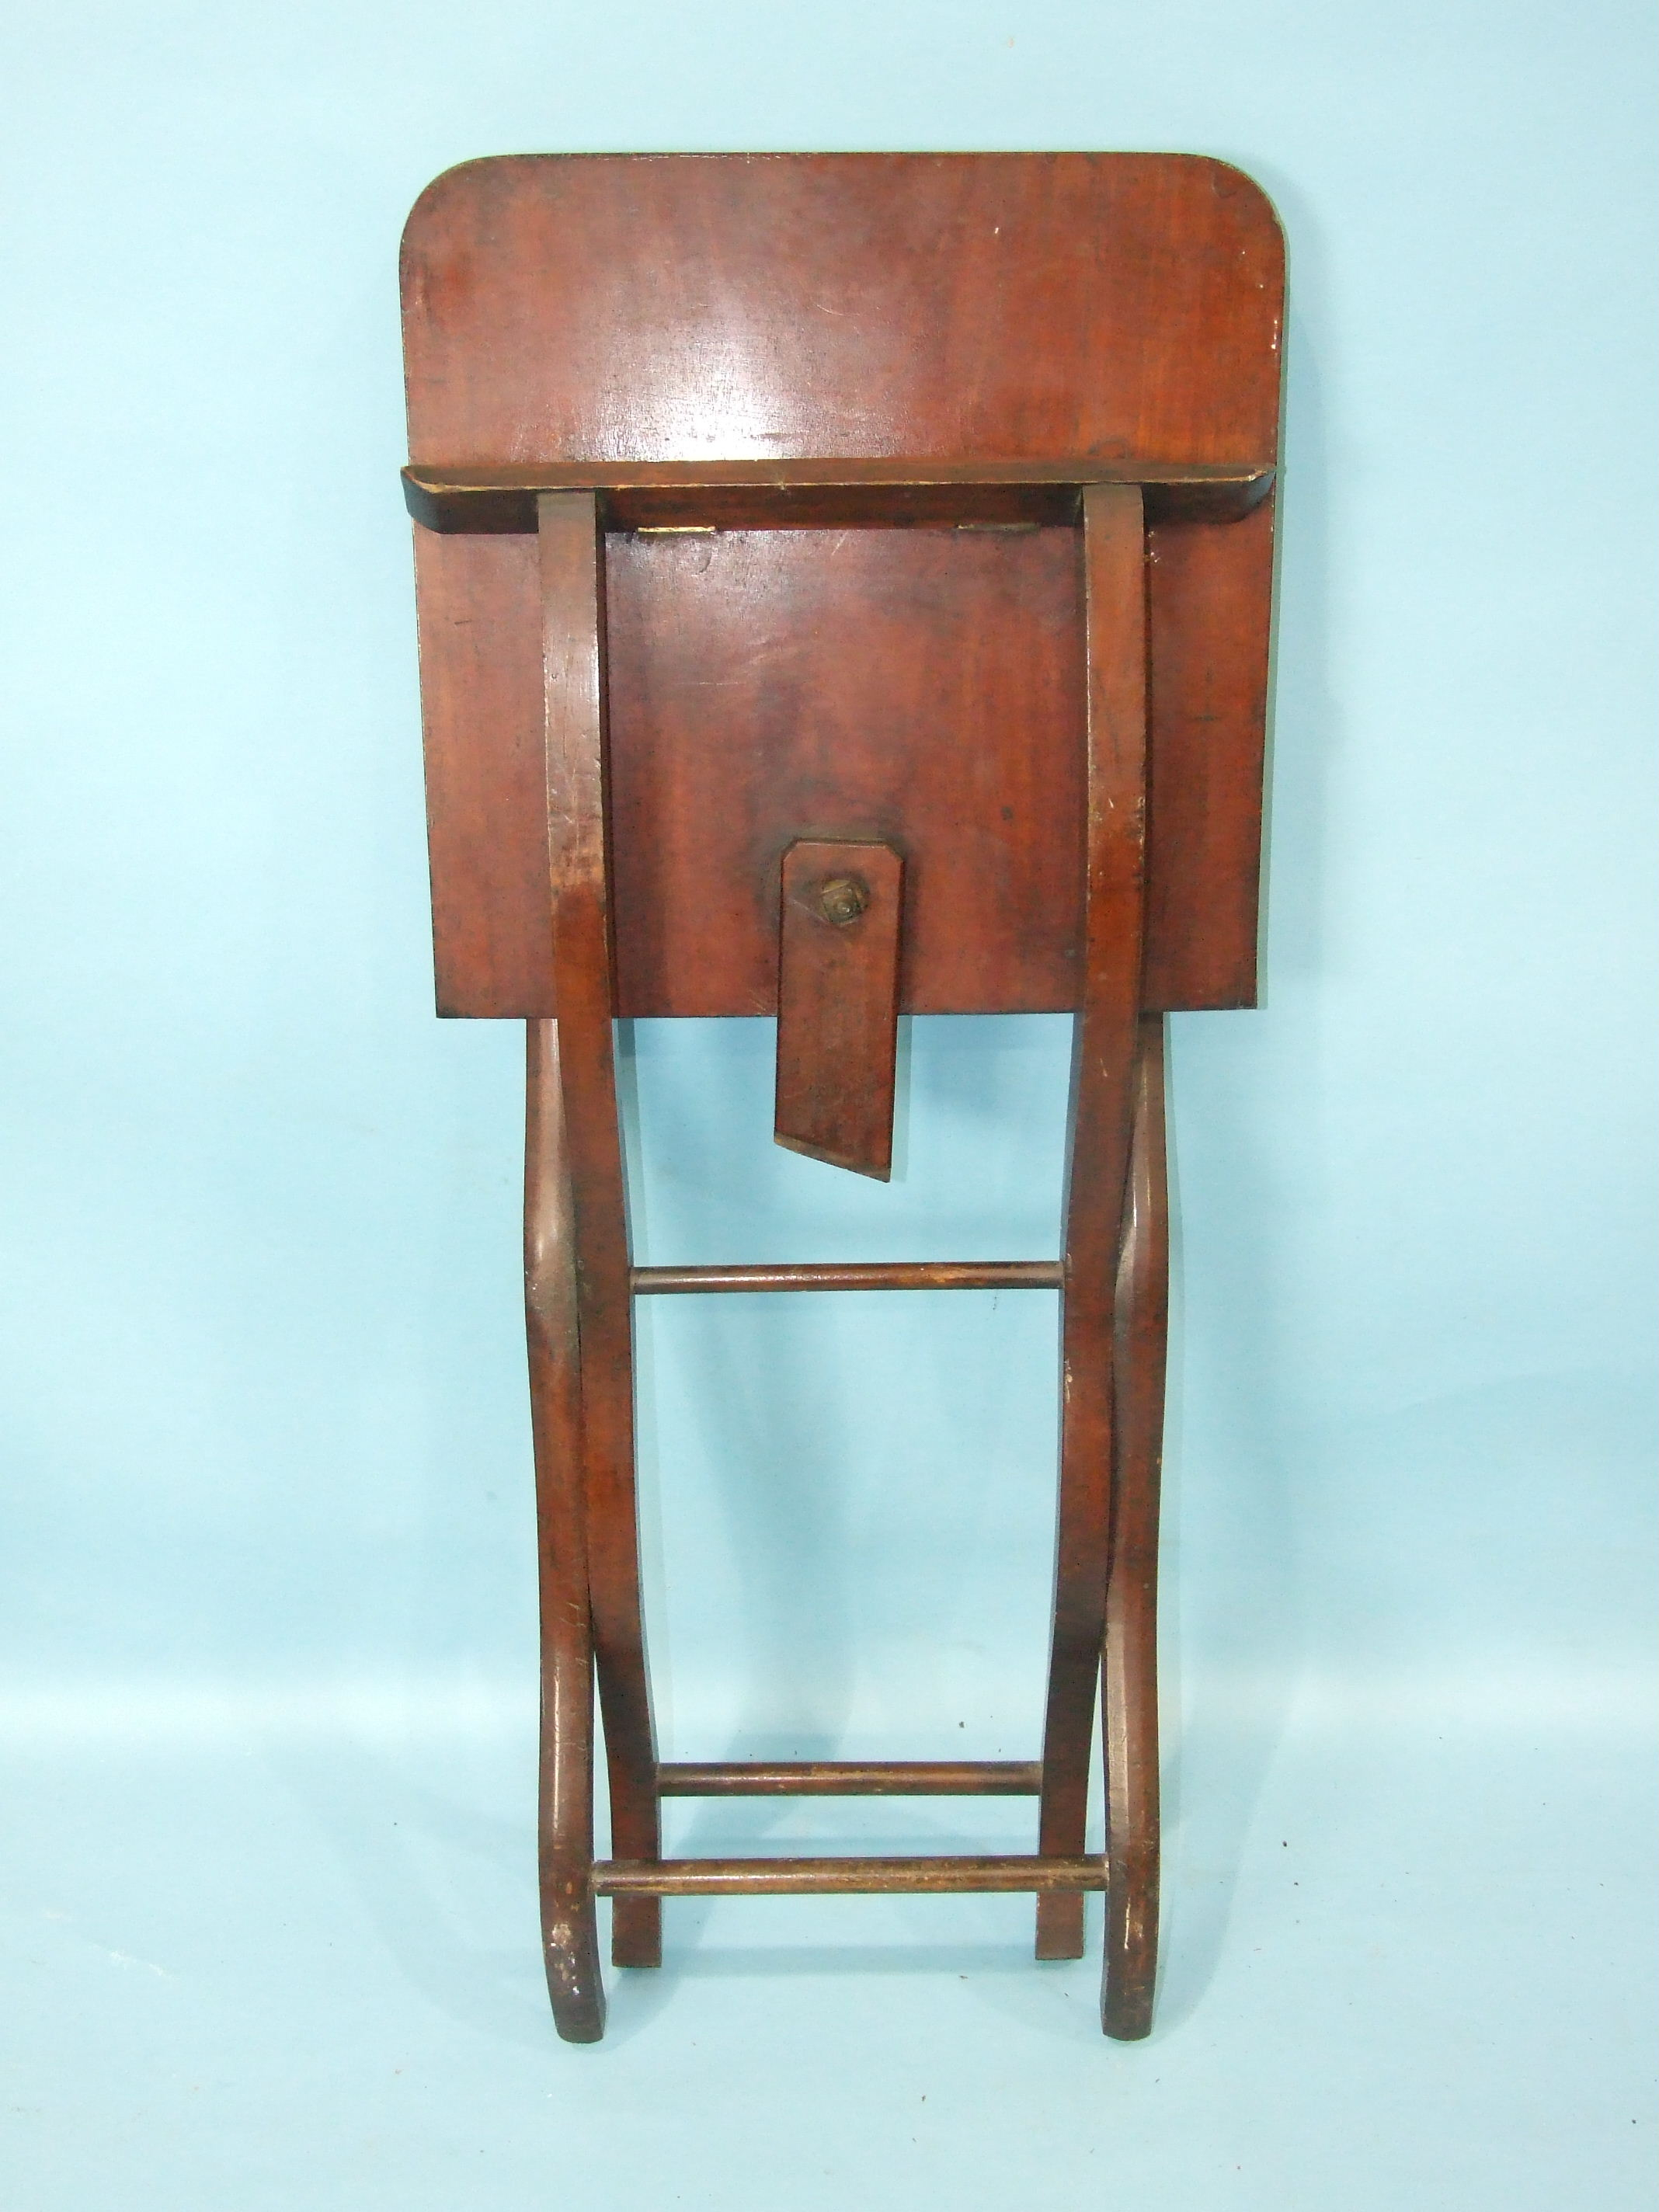 A 19th century mahogany hunting table, the rectangular folding top with flush hinges, on - Image 2 of 3